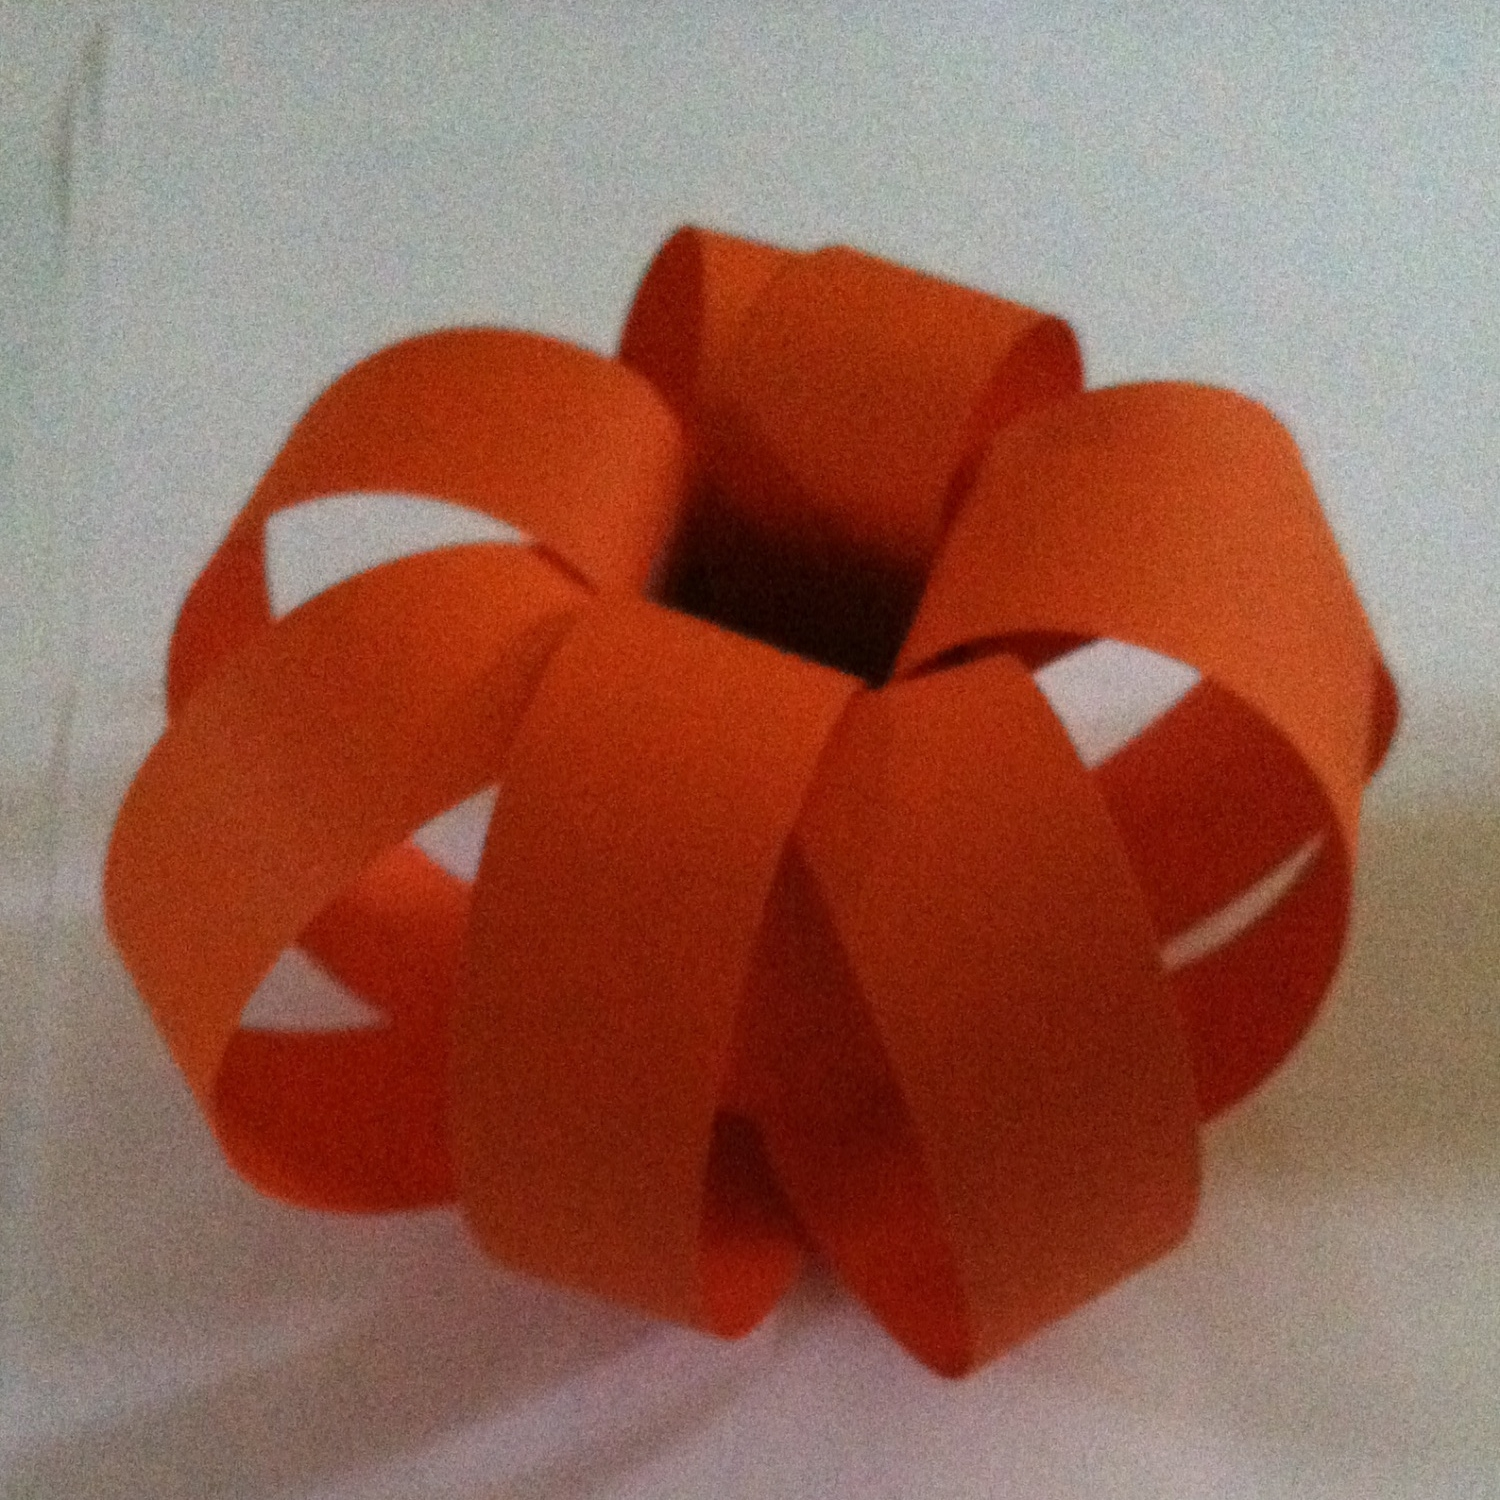 Step 4: Bring all of the orange construction paper strips down from the top of your pumpkin to the bottom and attach, making a nice round pumpkin shape.